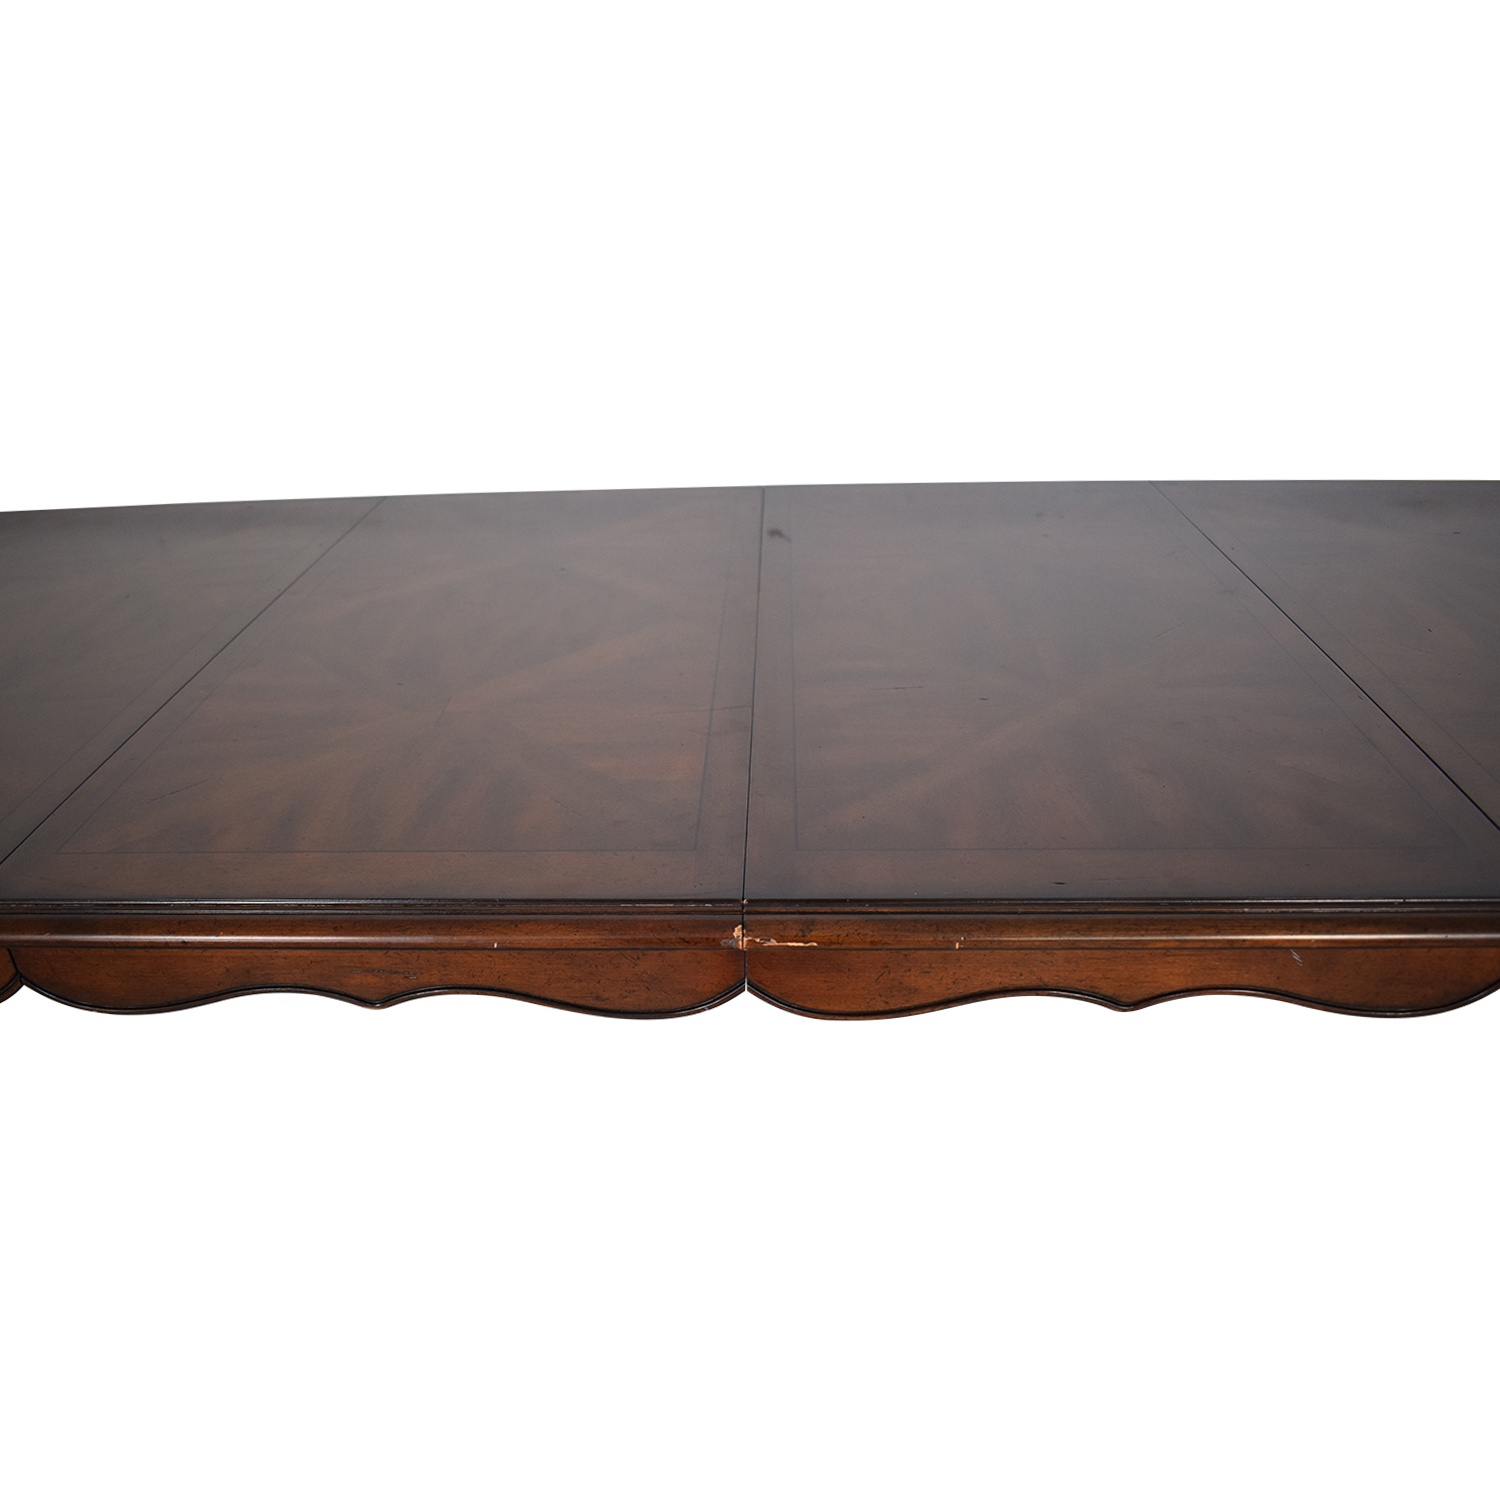 Drexel Heritage Drexel Heritage Extendable Dining Table for sale